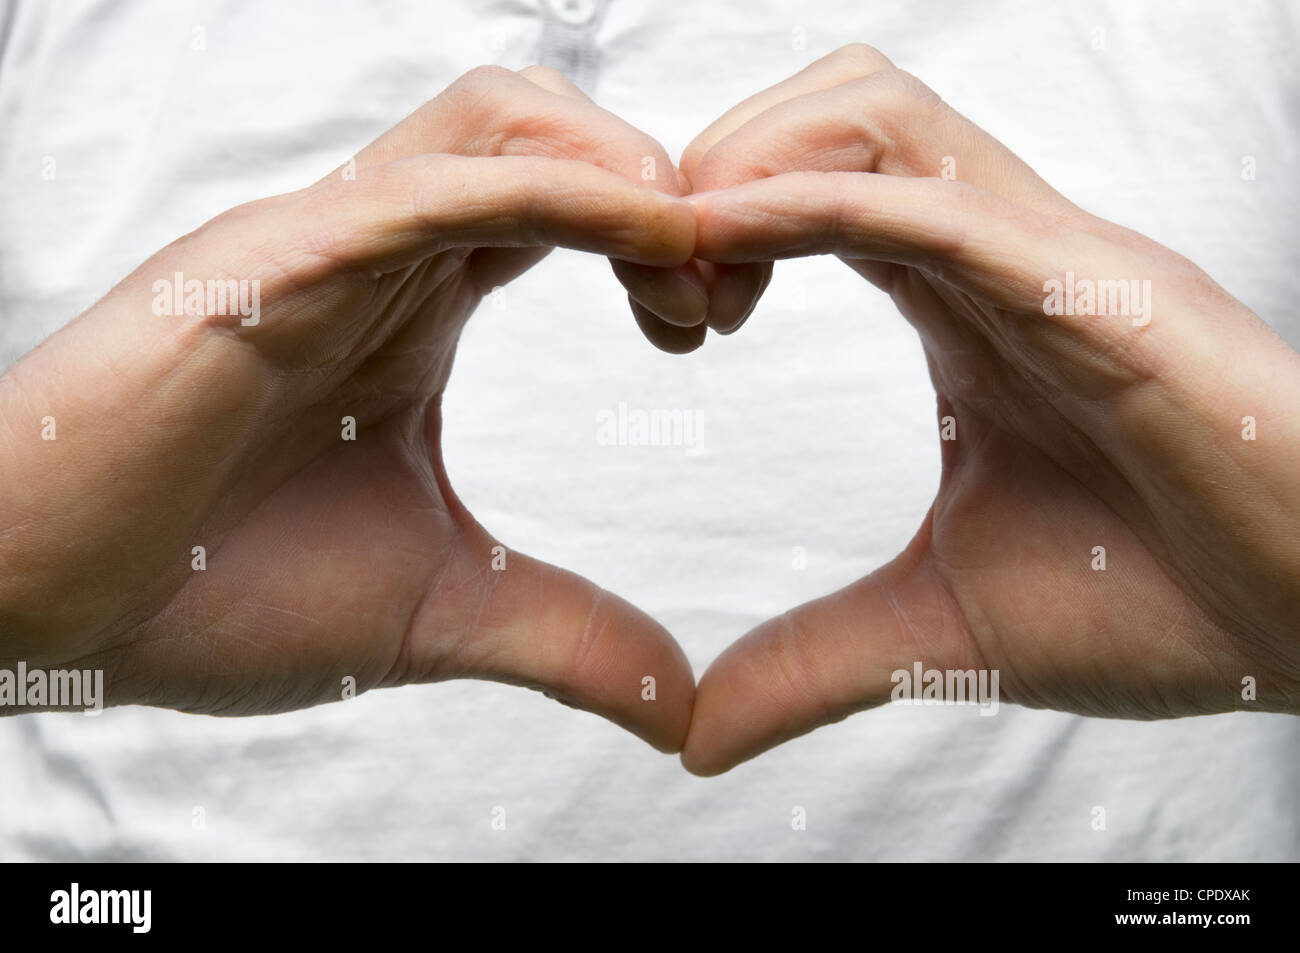 Caucasian male hands forming heart shape against white t-shirt showing concept of either love or look after your - Stock Image